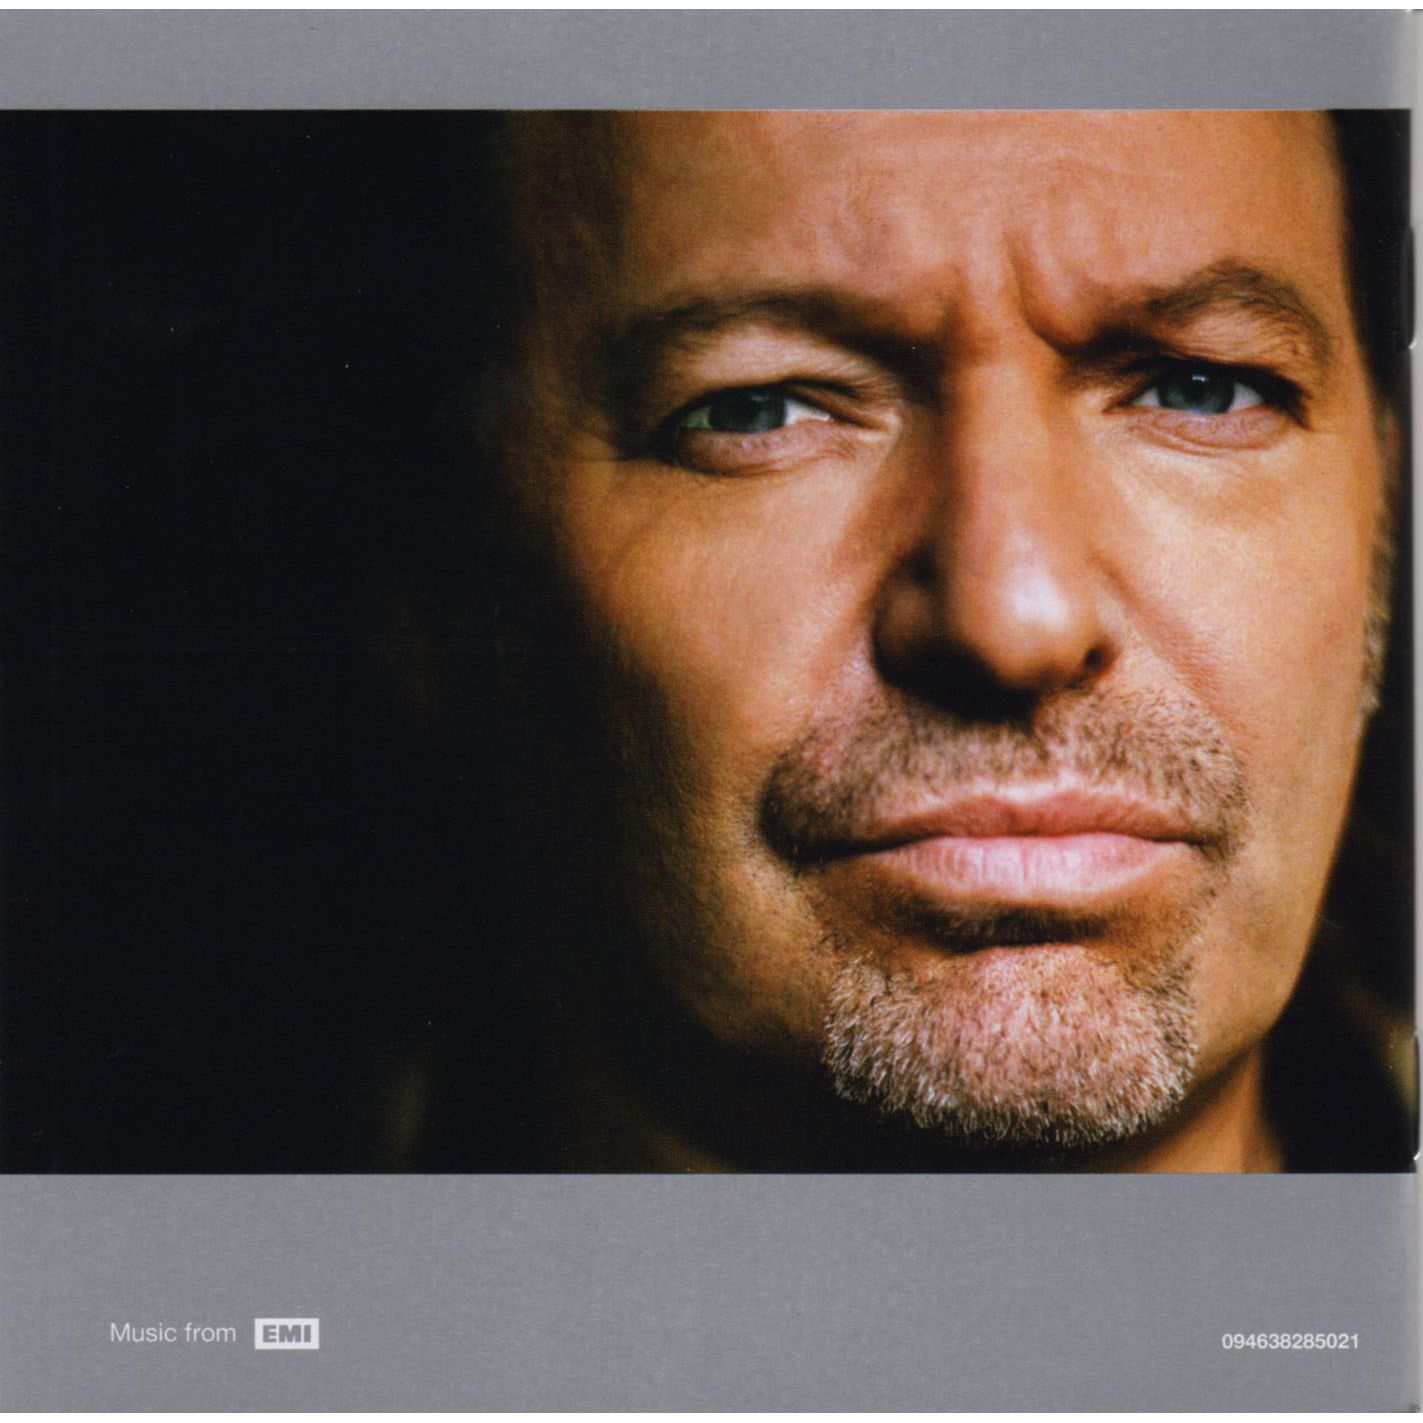 Vasco Rossi Mondo Migliore The Platinum Collection Cd1 Vasco Rossi Mp3 Buy Full Tracklist